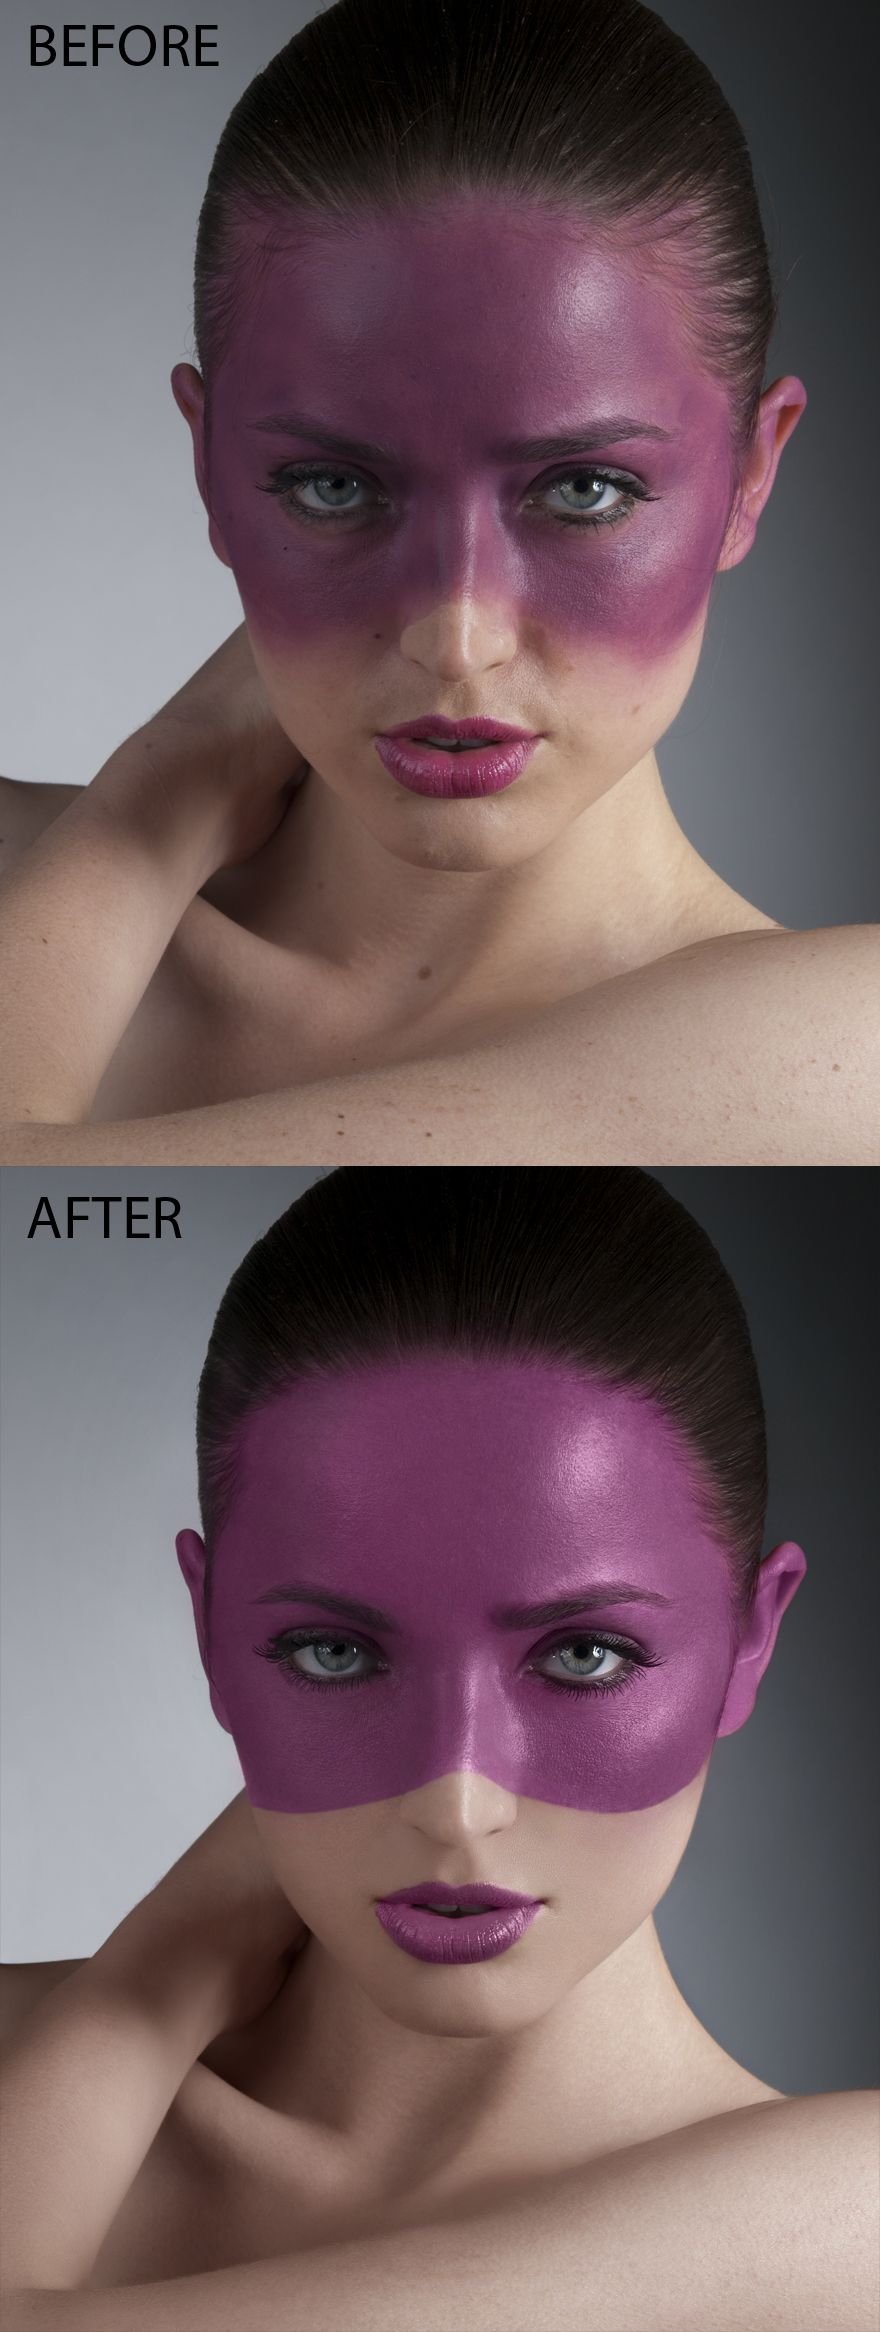 Makeup Retouching | Photo Retouching | Photoshop ...